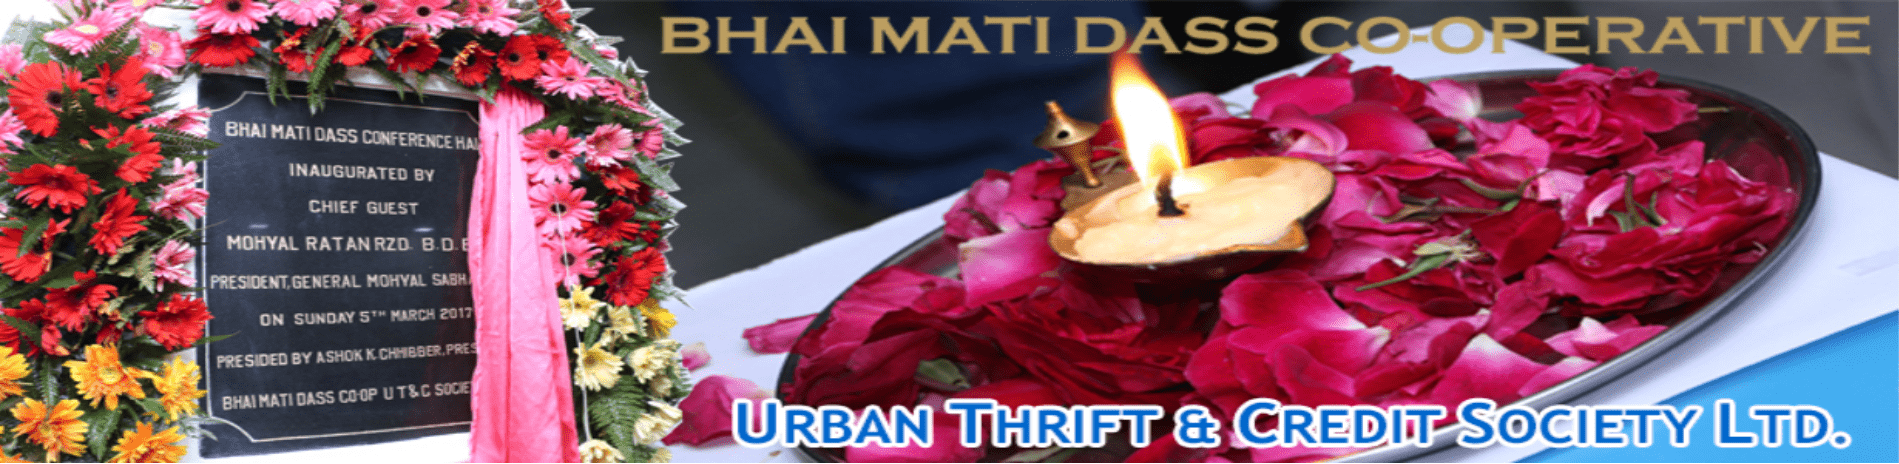 Bhai Mati Dass Co-operative Urban Thrift and Credit Society Ltd